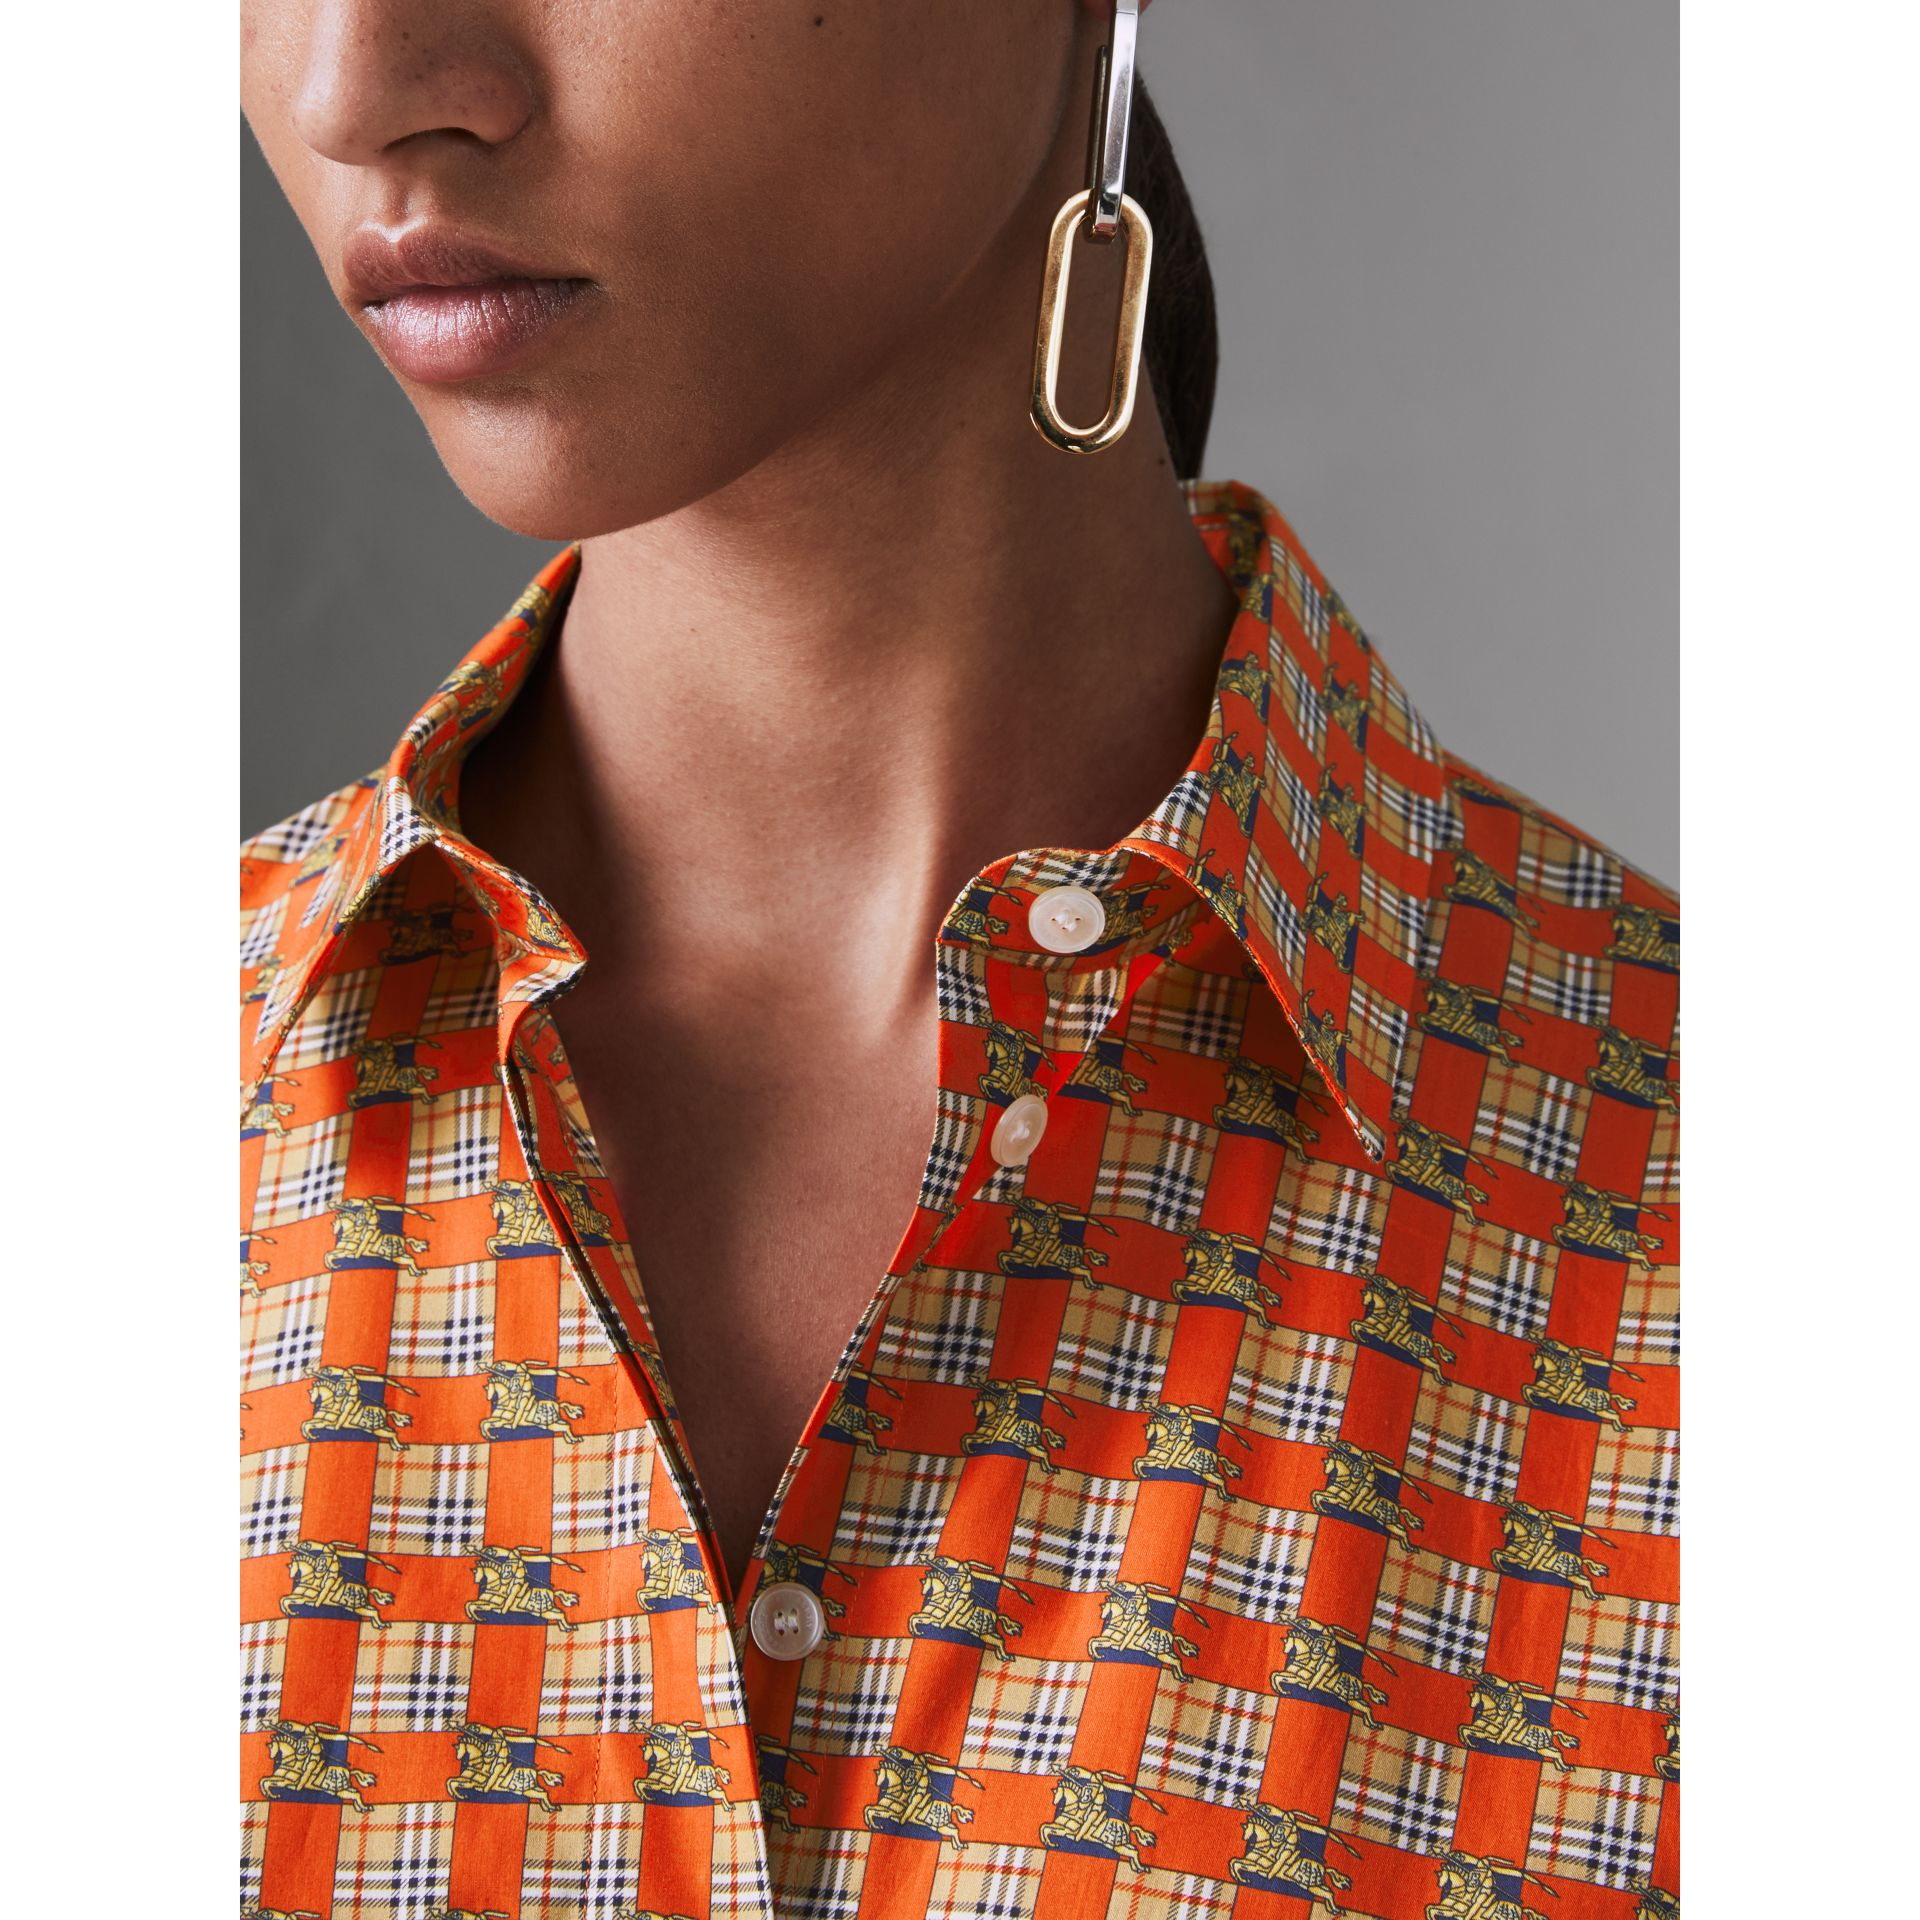 Tiled Archive Print Cotton Shirt in Bright Red - Women | Burberry - gallery image 4